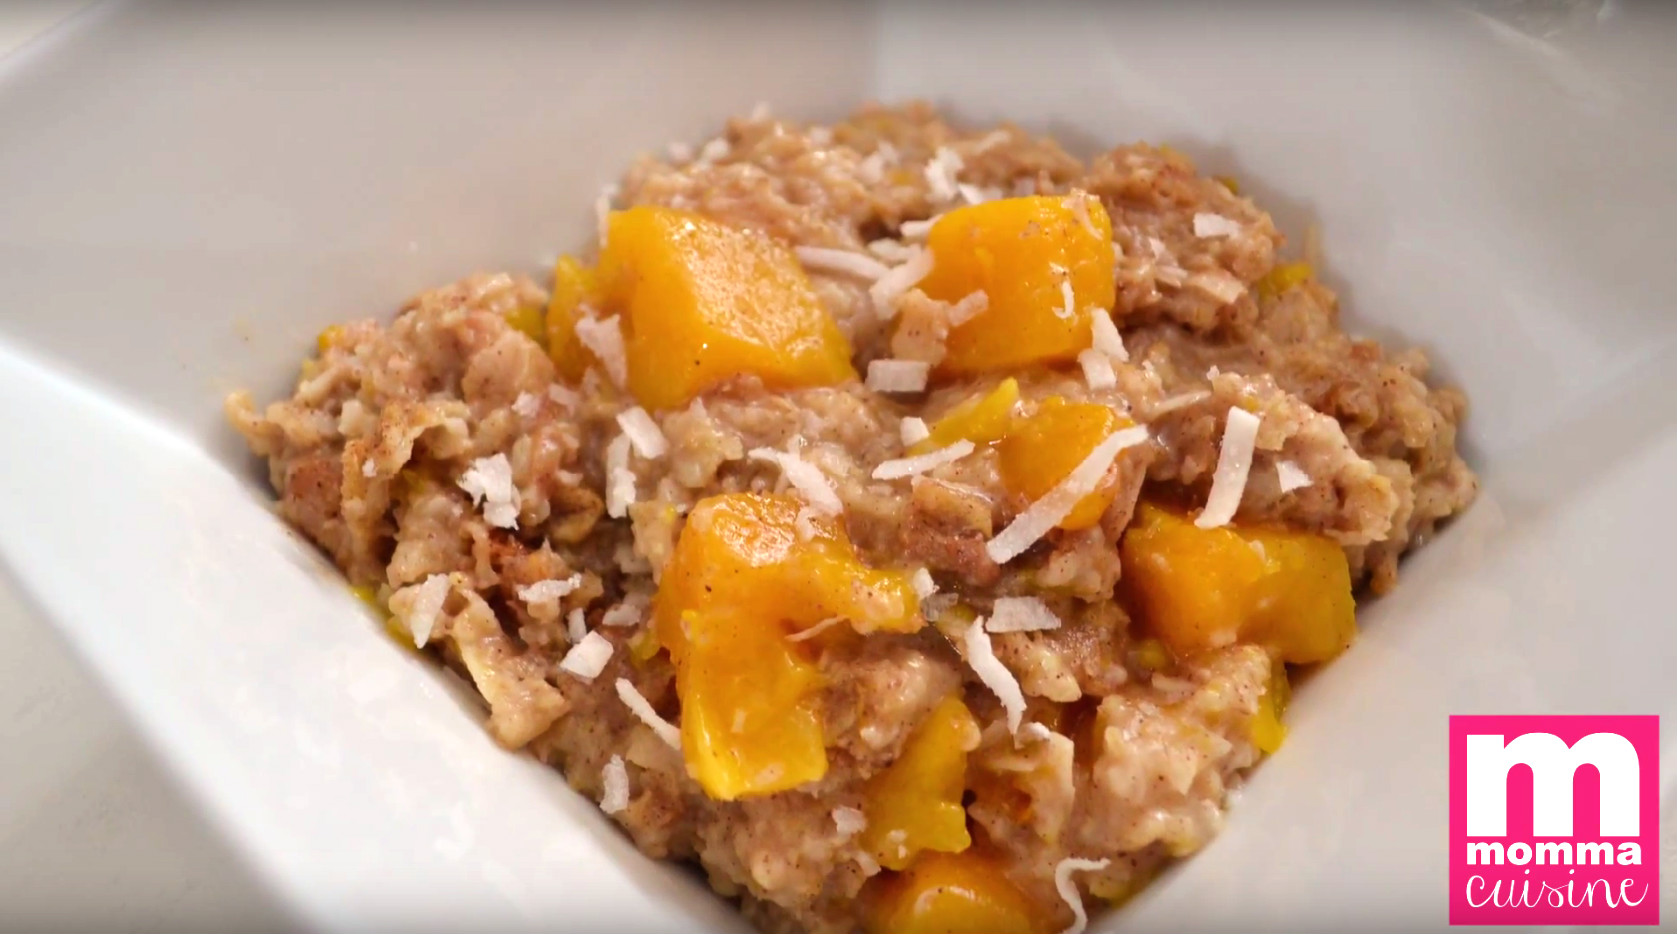 This fruity and fresh oatmeal morning starter is a great way to start your day out with plenty of energy. Not only do mango and coconut make the perfect fruit combination, but the fiber in the oatmeal is great for your digestive system, making this recipe the ultimate healthy breakfast.